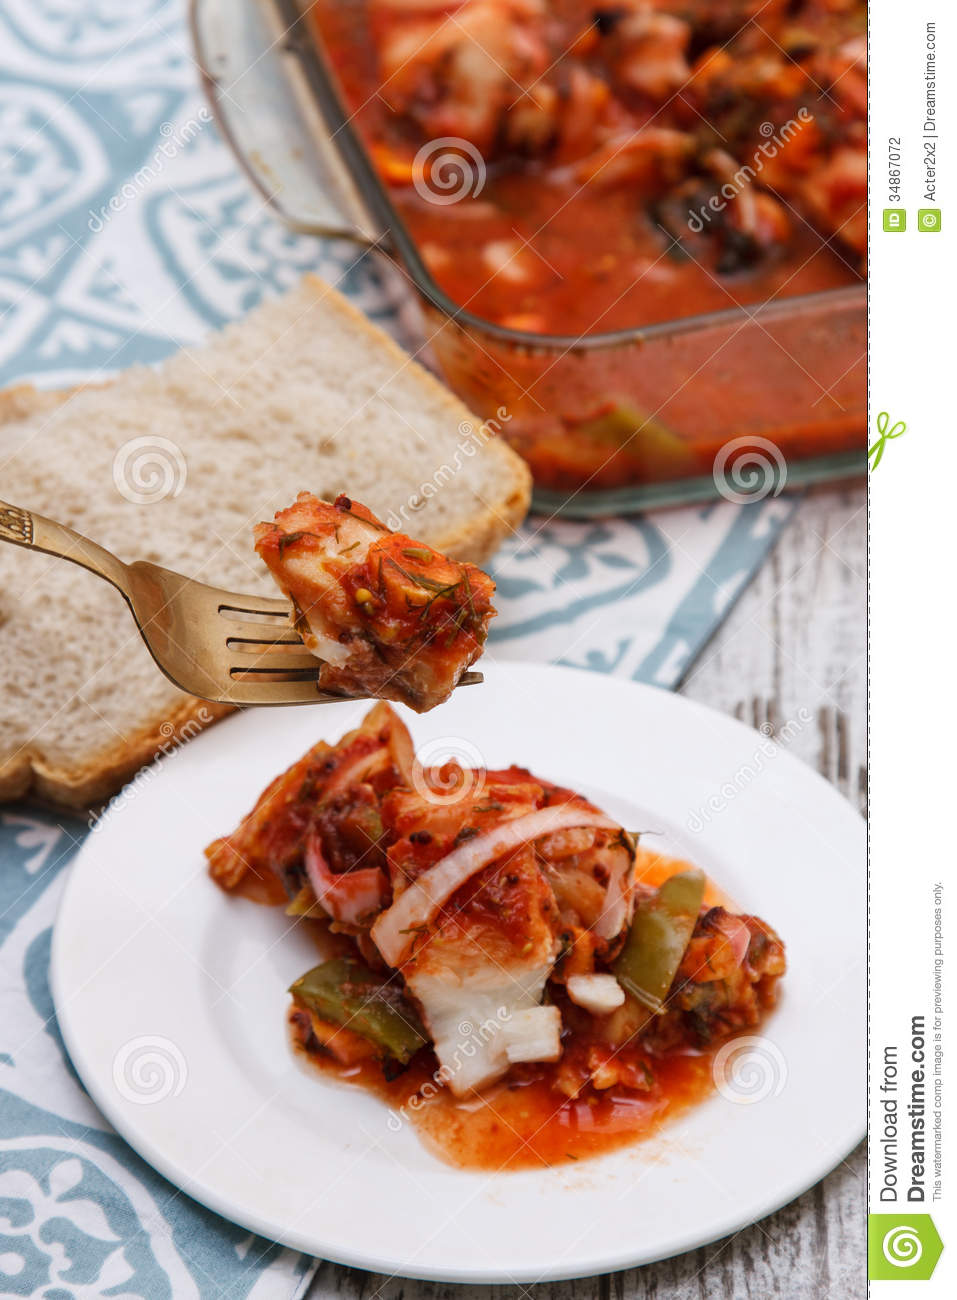 Fish in tomato sauce stock photography image 34867072 for Fish in tomato sauce